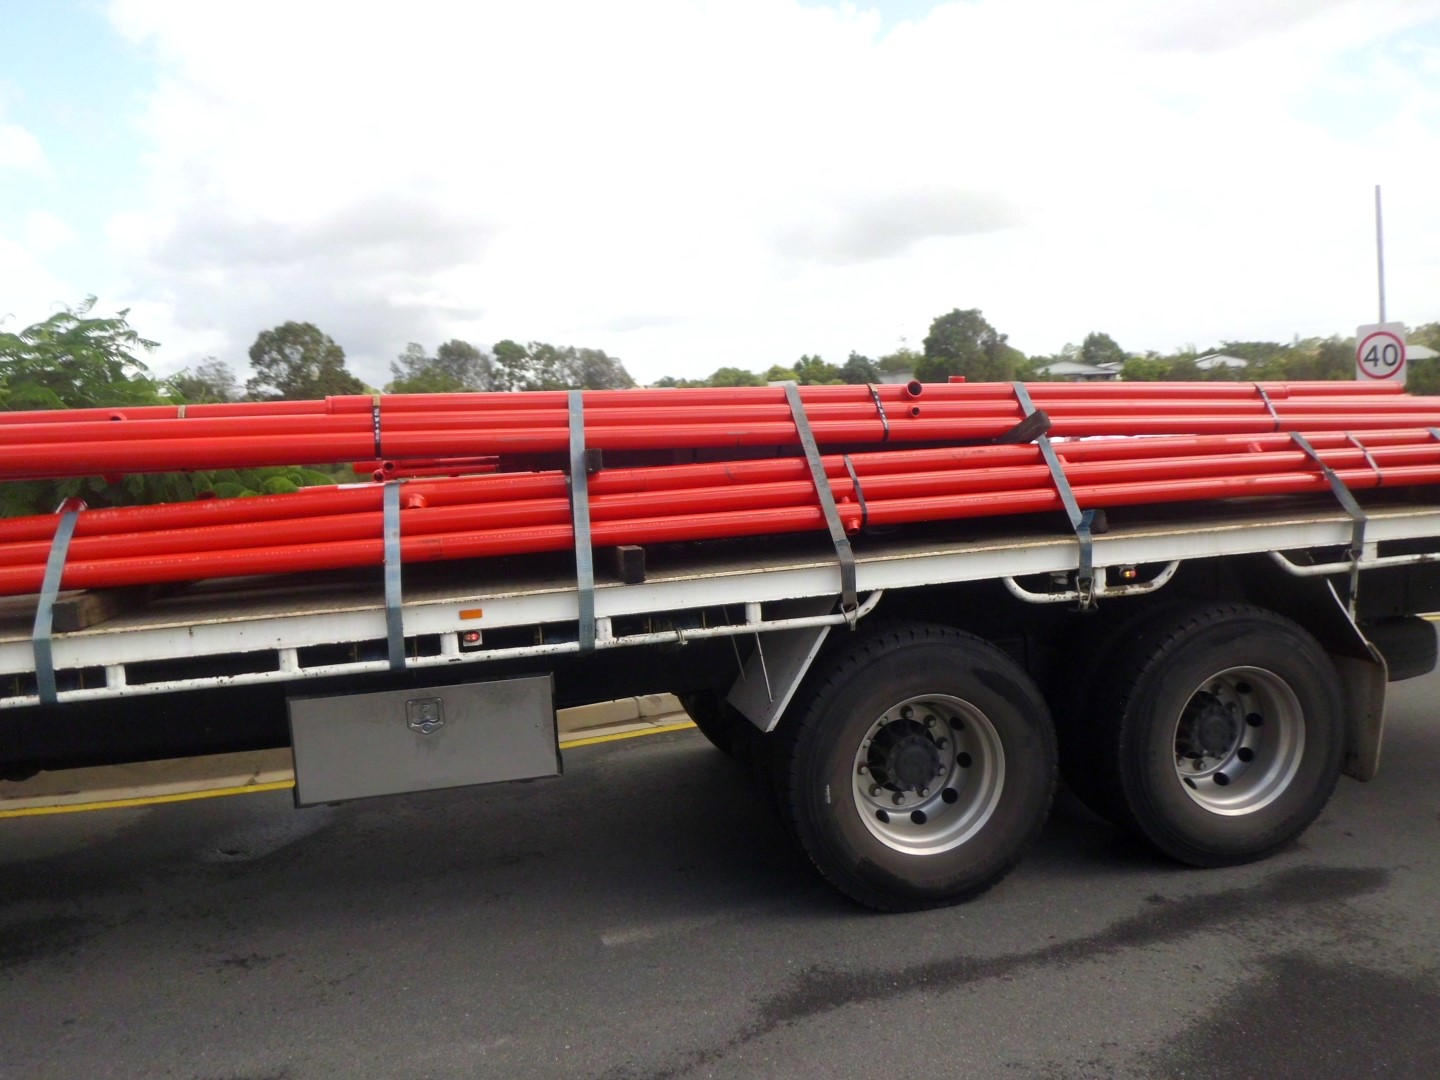 Red metal pipes